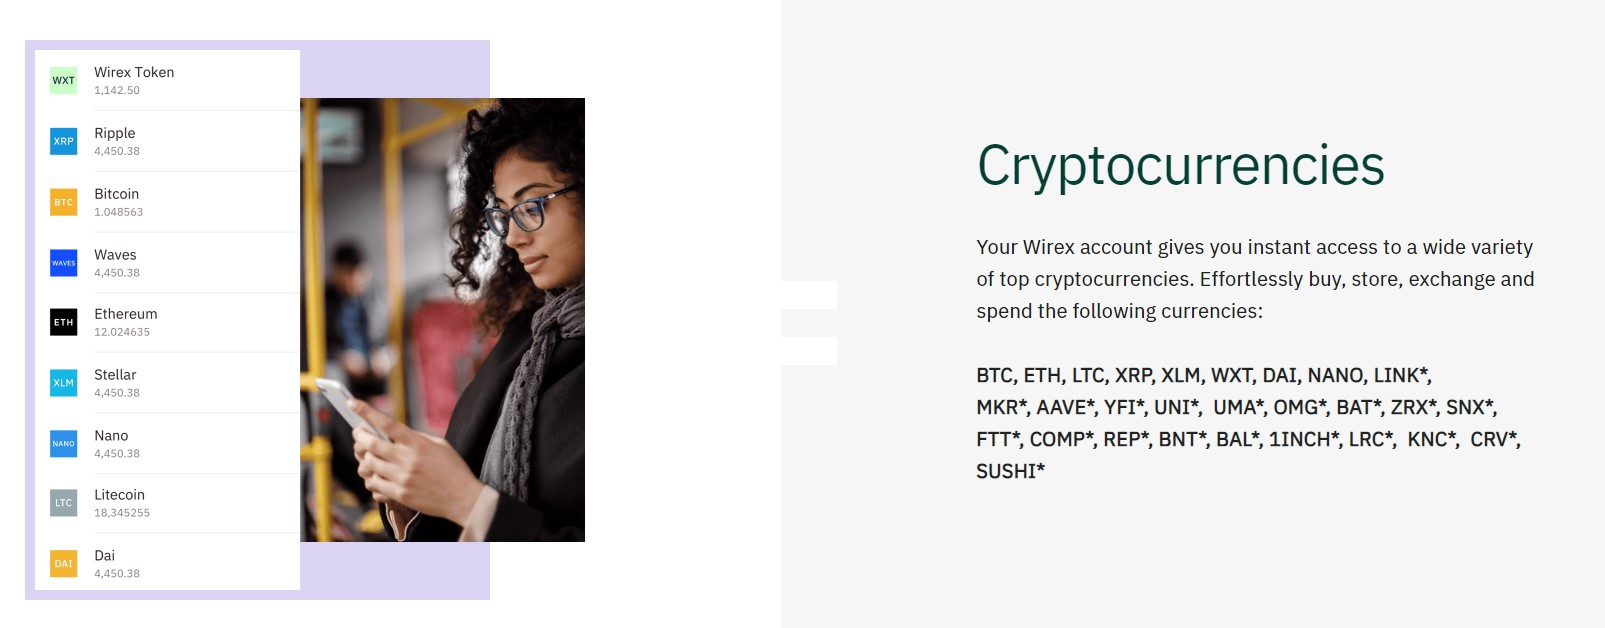 Wirex supported cryptocurrencies